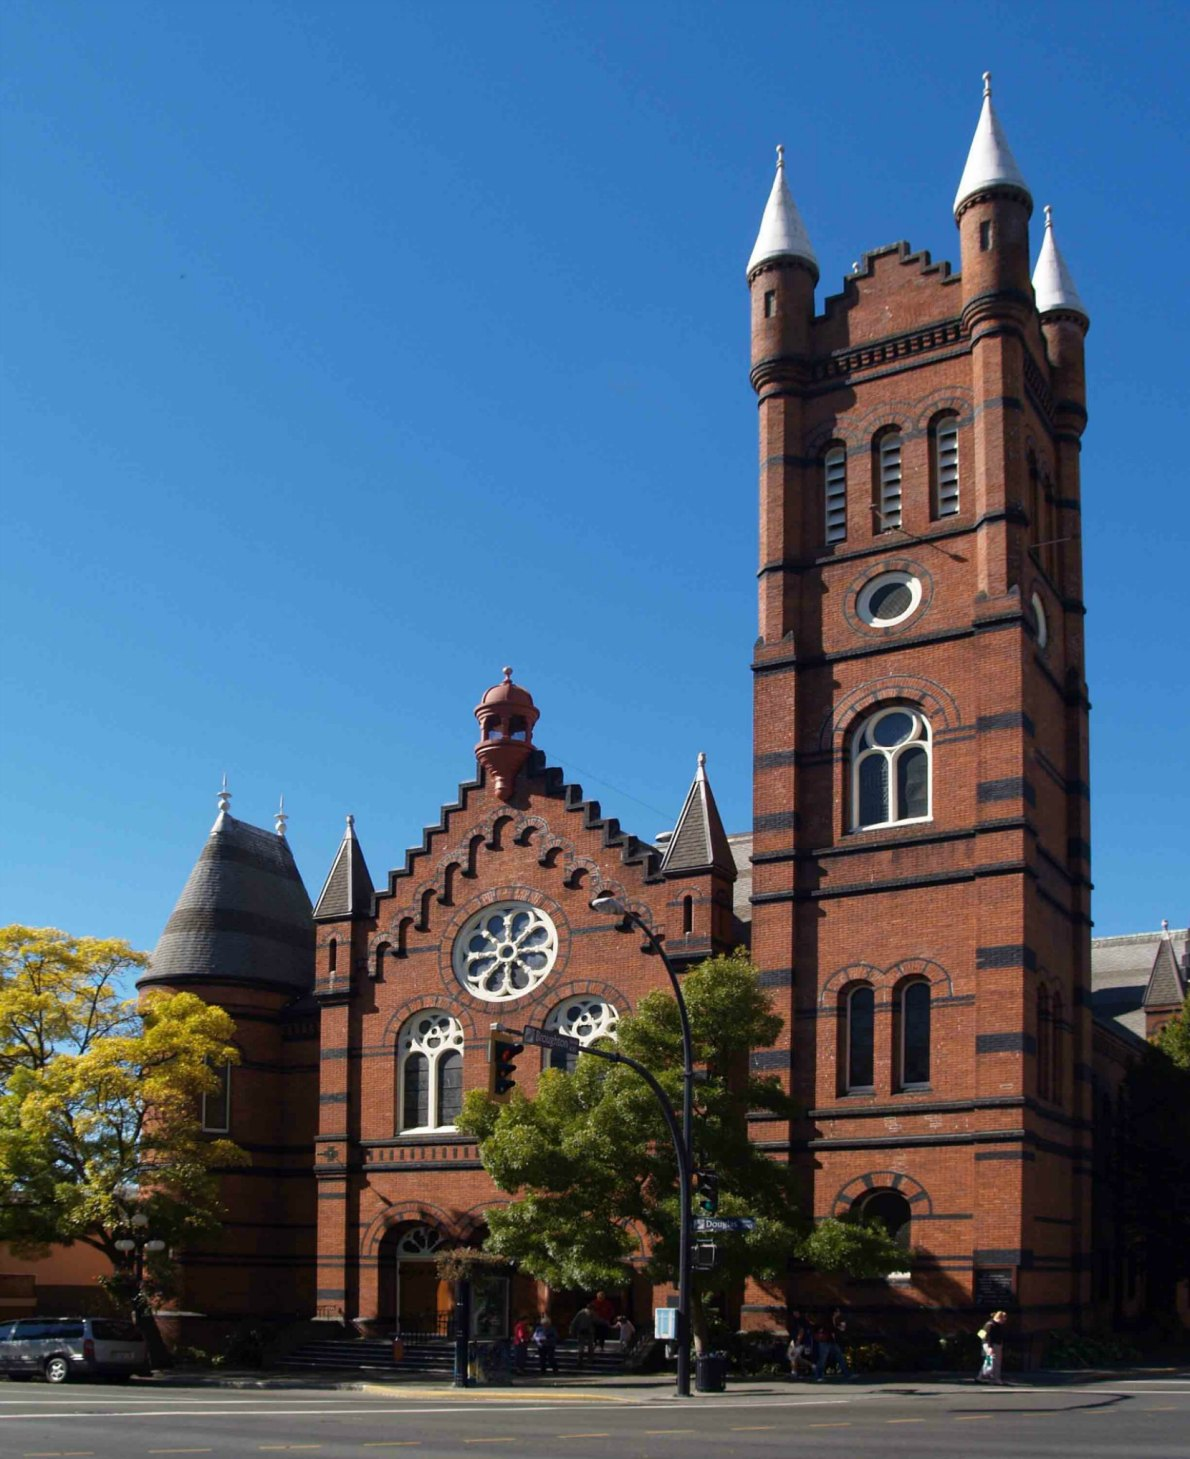 St. Andrew's Presbyterian Church, 900 Douglas Street, Built in 1890.